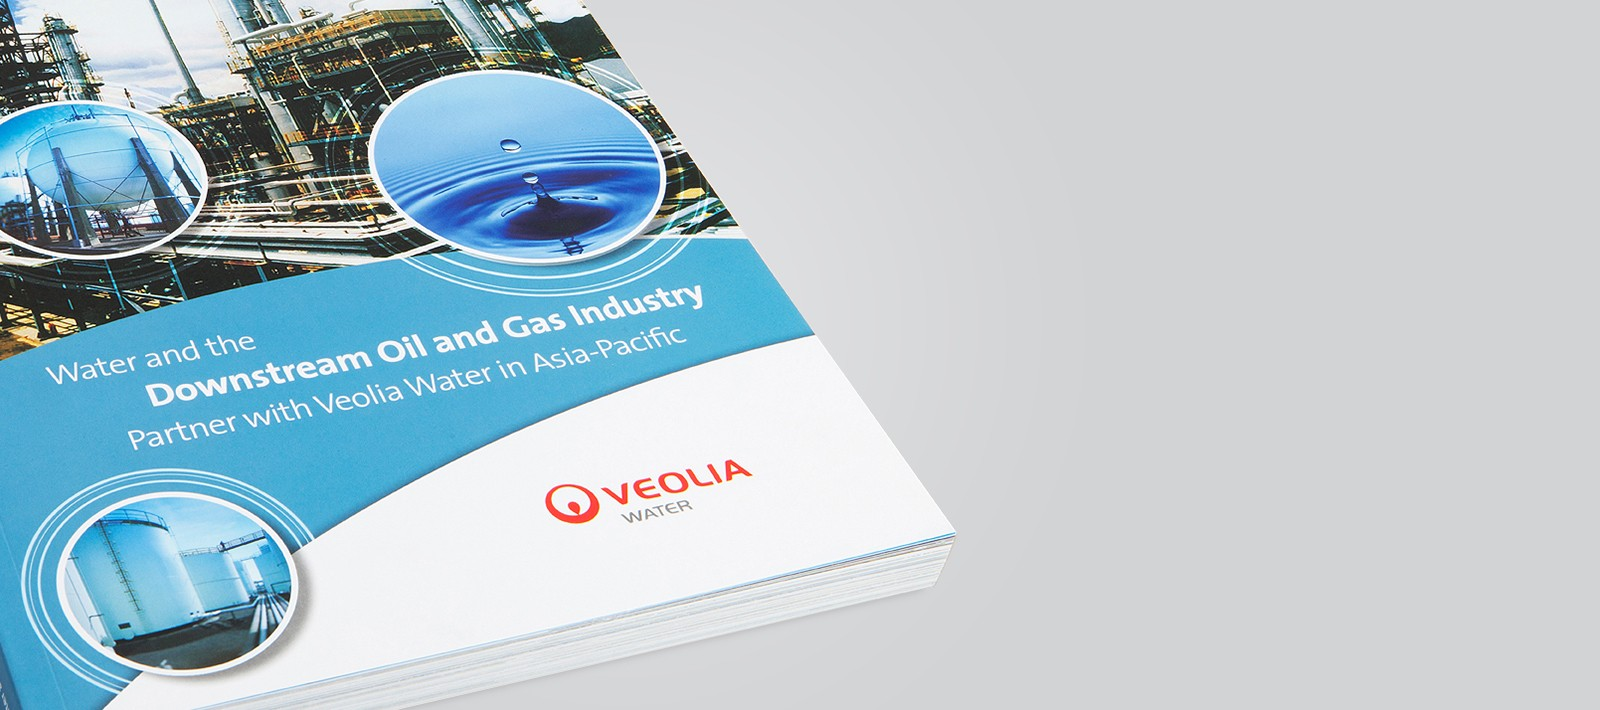 Brochure design for Veolia